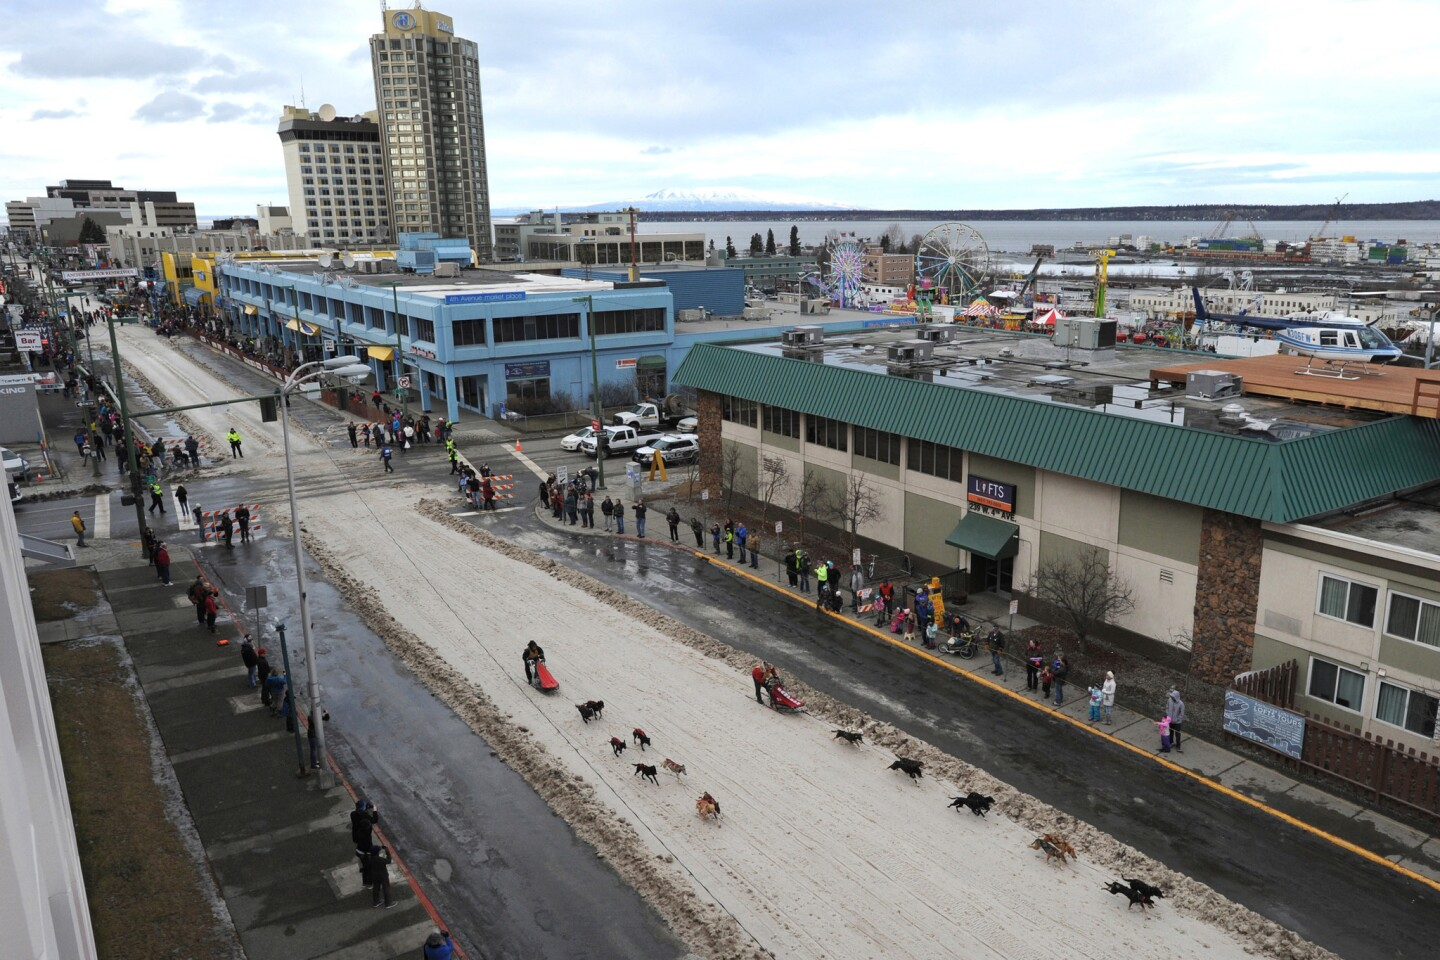 Alaska had the second-warmest December through February of the last century, and many parts of the state, including Anchorage, are seeing their warmest winters ever. Mushers drive their dog teams down a ribbon of snow that was placed in a snowless downtown Anchorage.